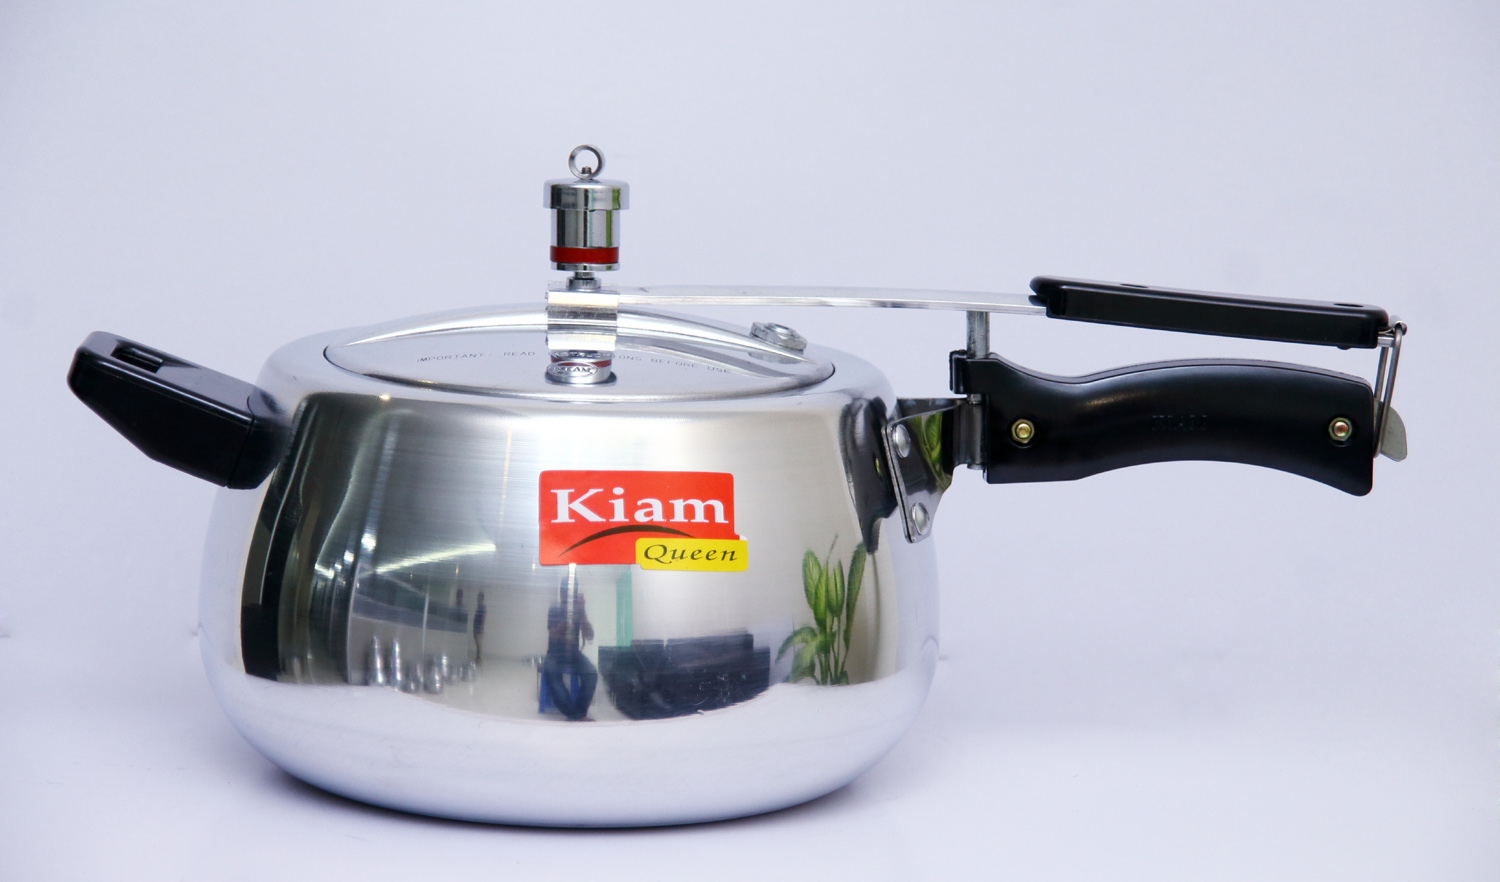 KIAM PRESSURE COOKER 5.5 LITRE CURVED BODY